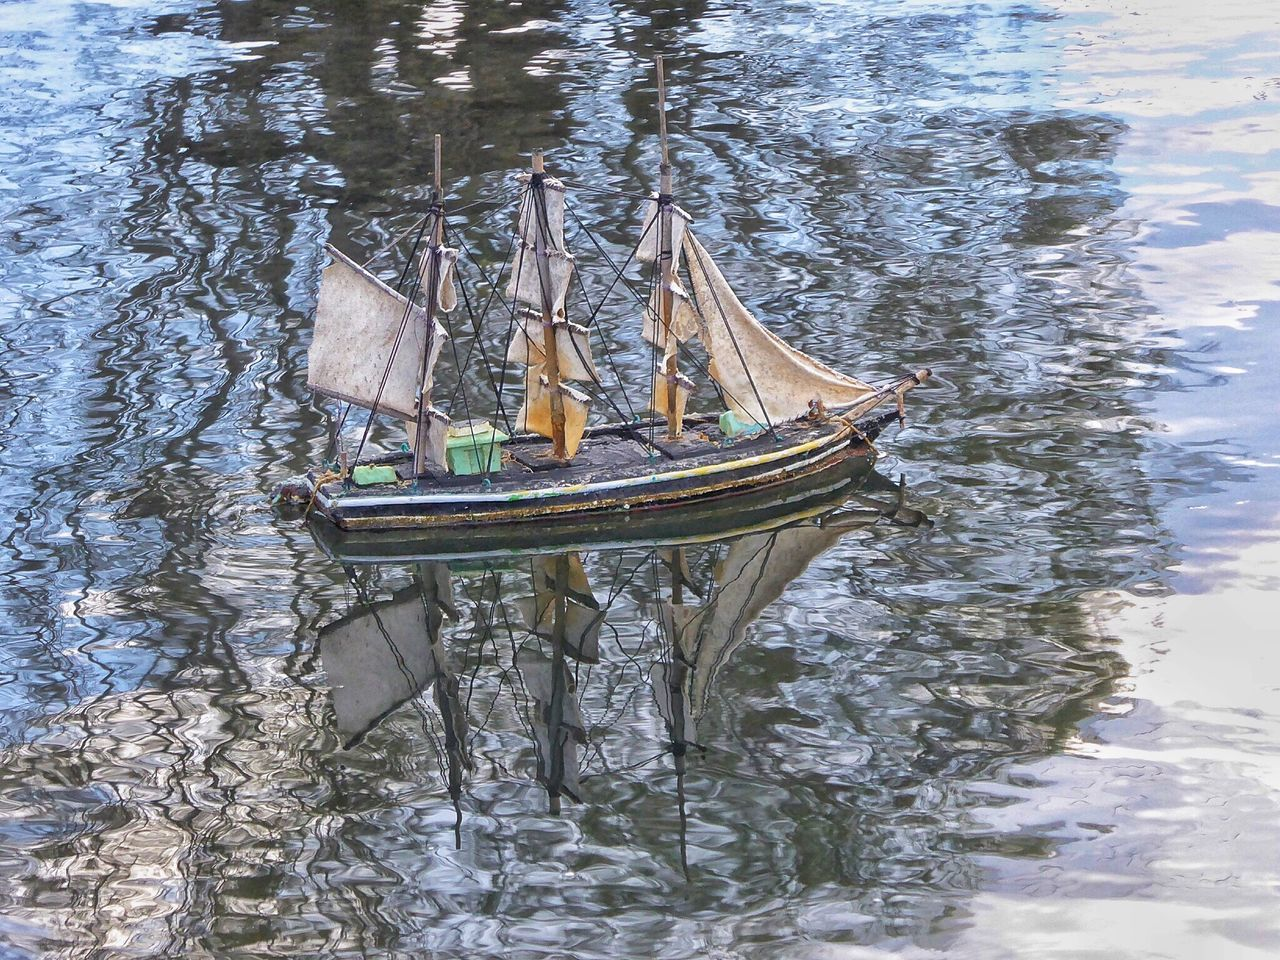 GREECE ♥♥ Dodecanese Arki Boats Boats⛵️ Boat Model Boat